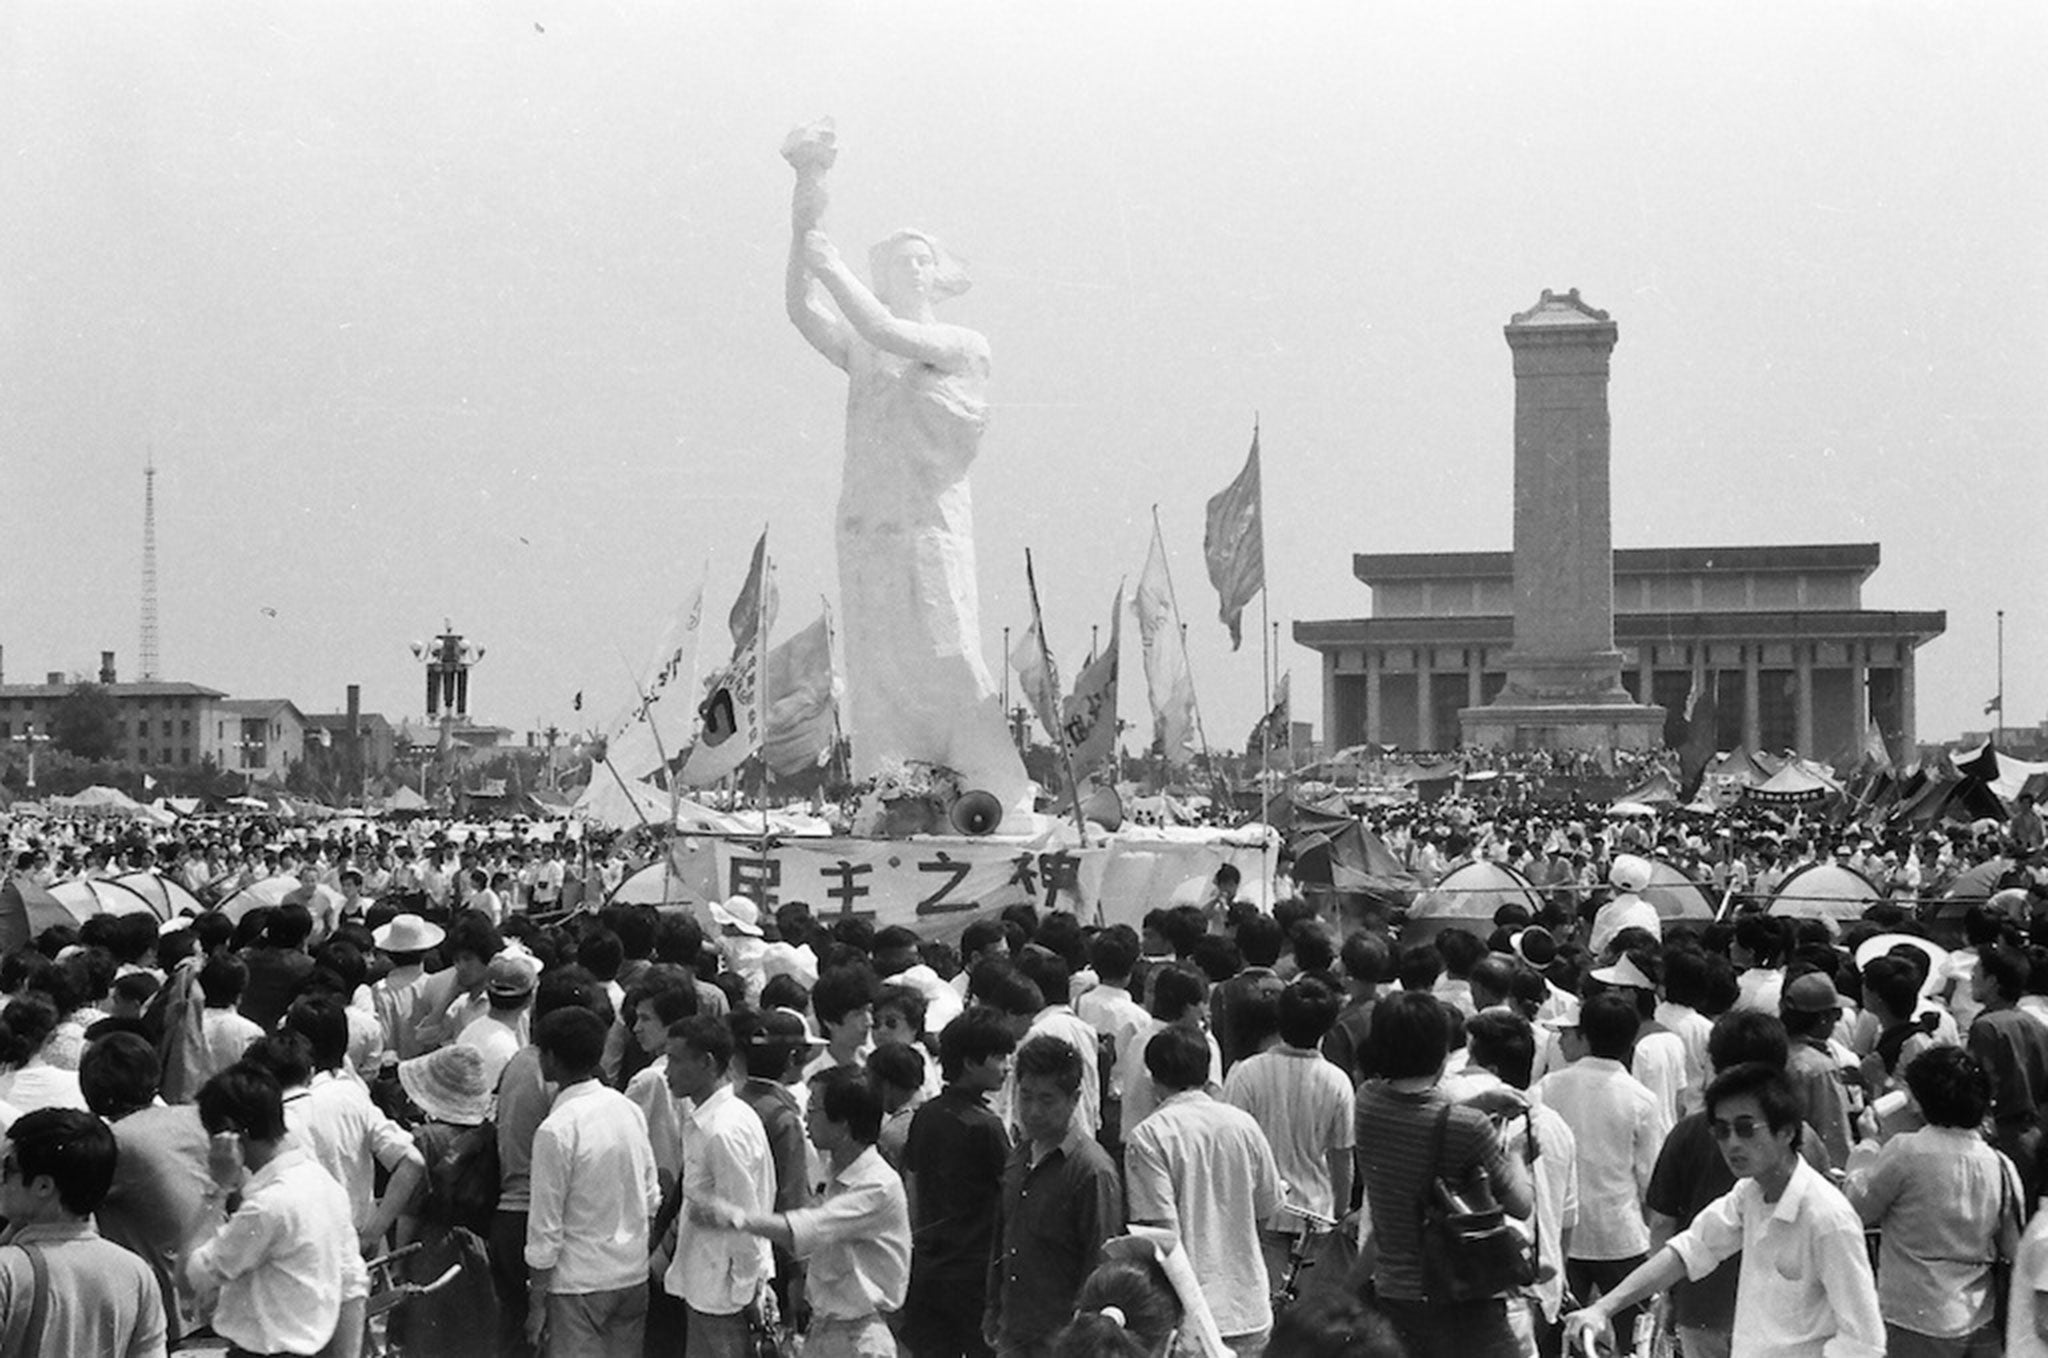 effects of the tienanmen square massacre Start studying wi tiananmen square learn vocabulary, terms, and more with flashcards, games, and other study tools.